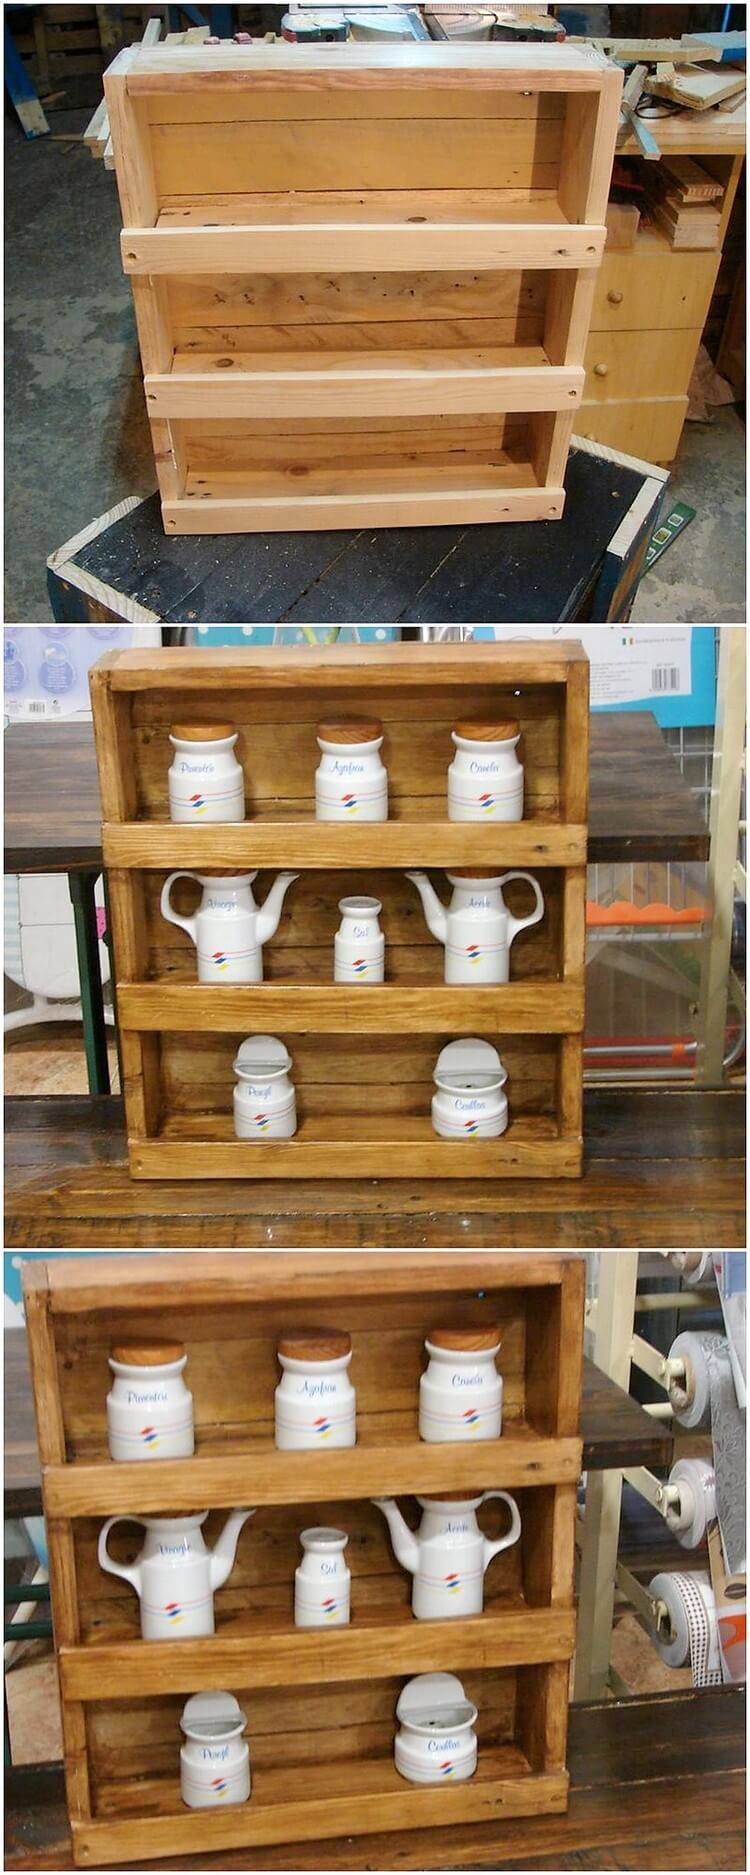 Pallet Kitchen Rack or Shelf